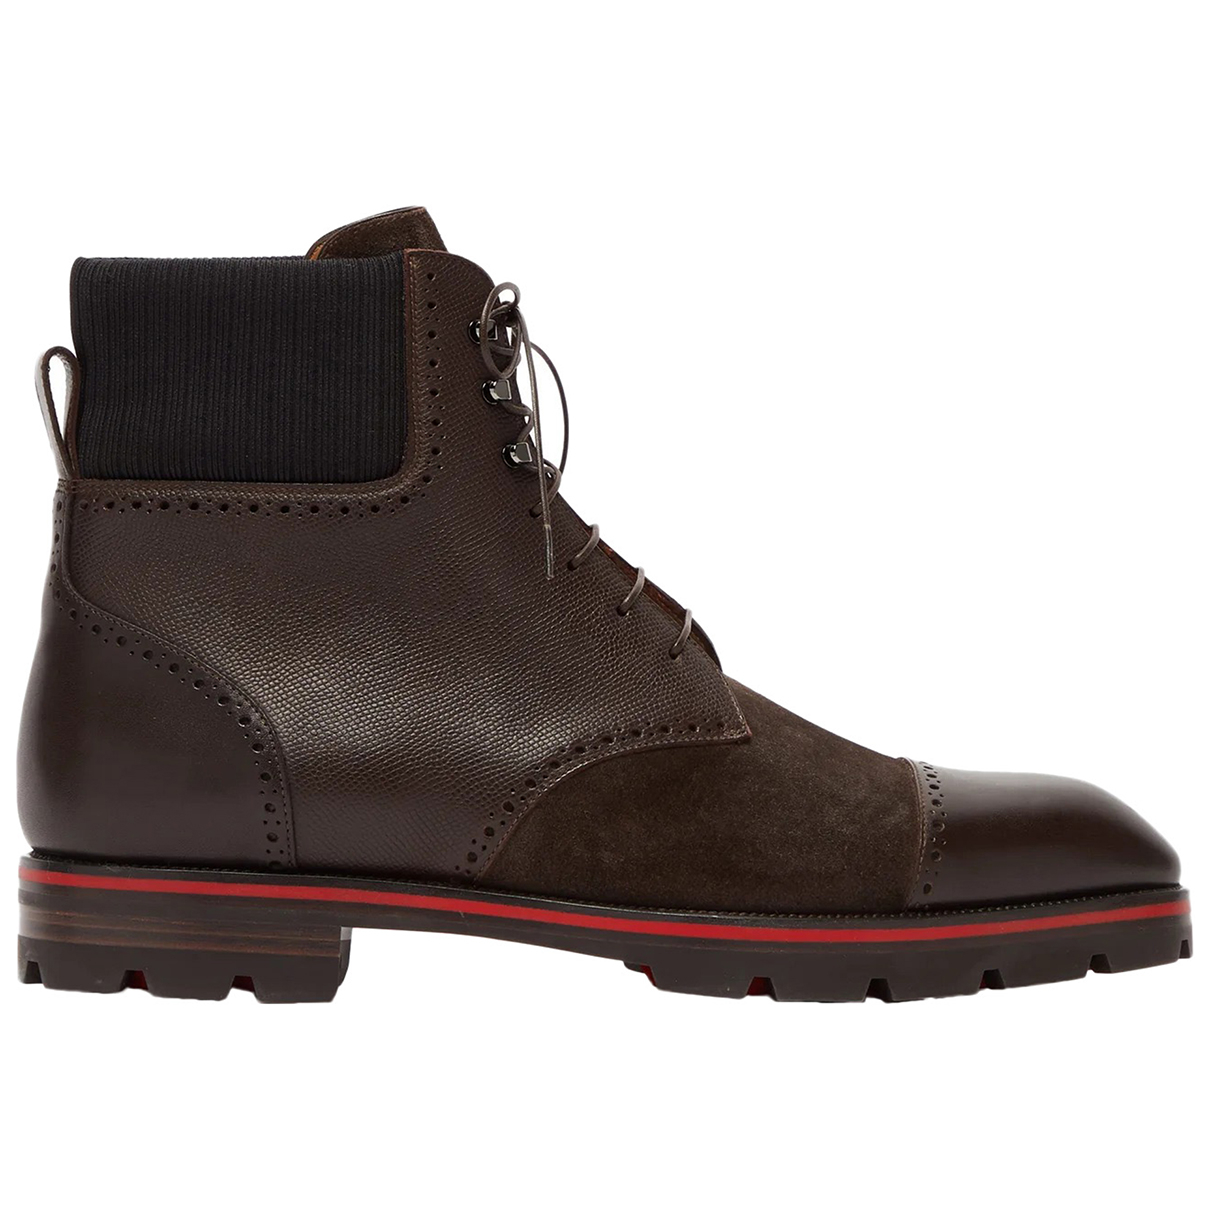 Christian Louboutin \N Brown Leather Boots for Men 41 EU